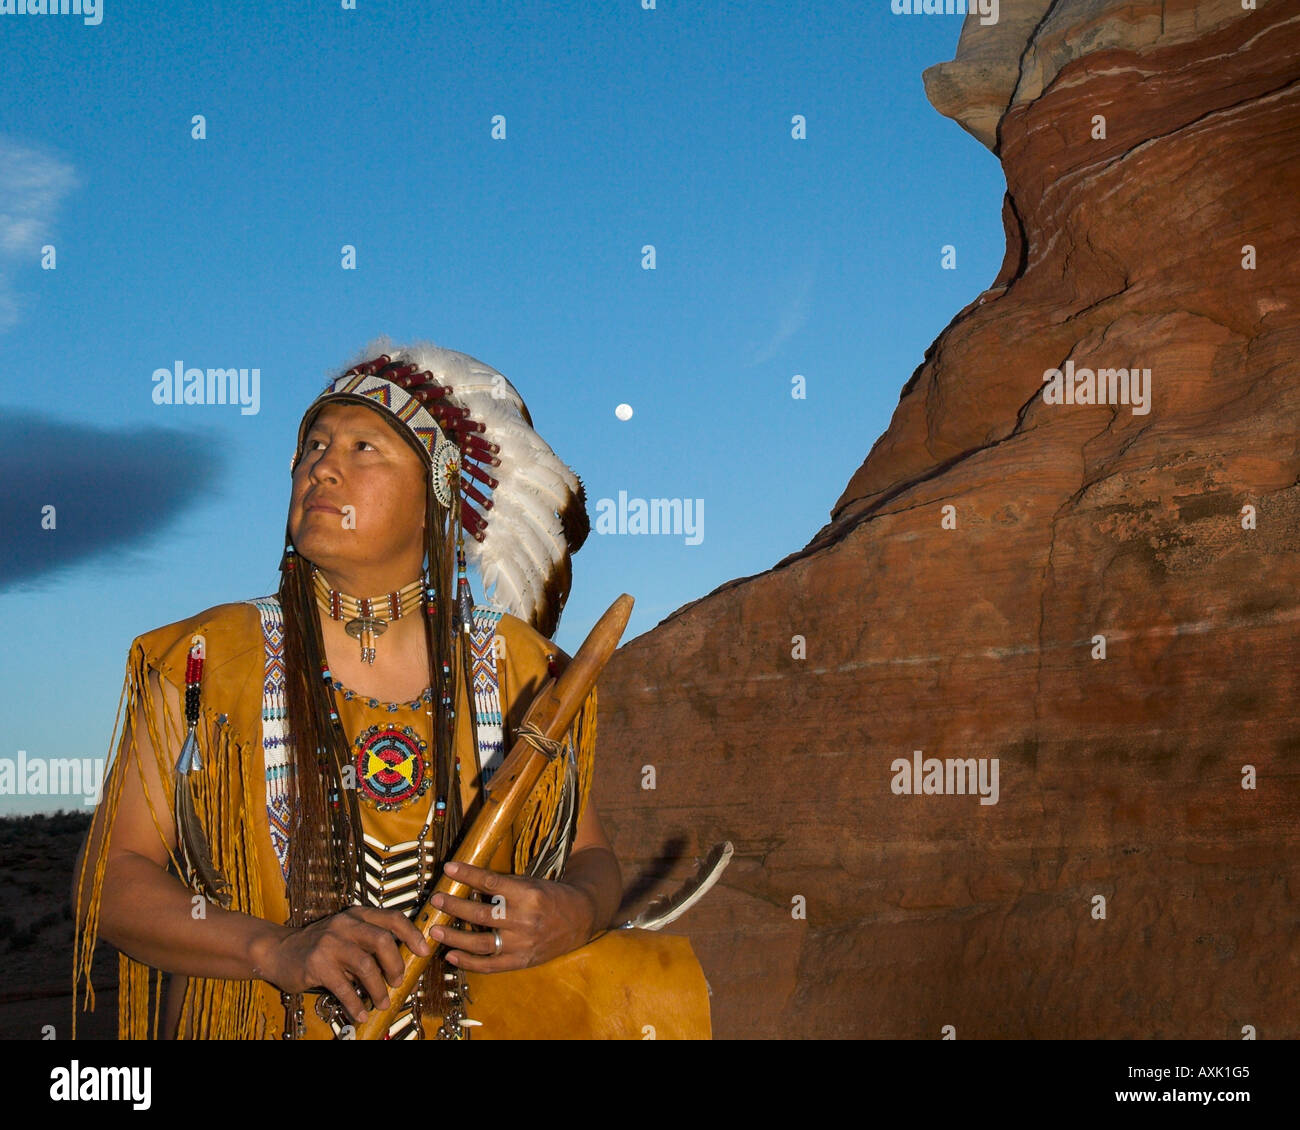 Native American Indian man person cultural outfit uniform headdress feathers hill patterns rock Chief nature beads - Stock Image